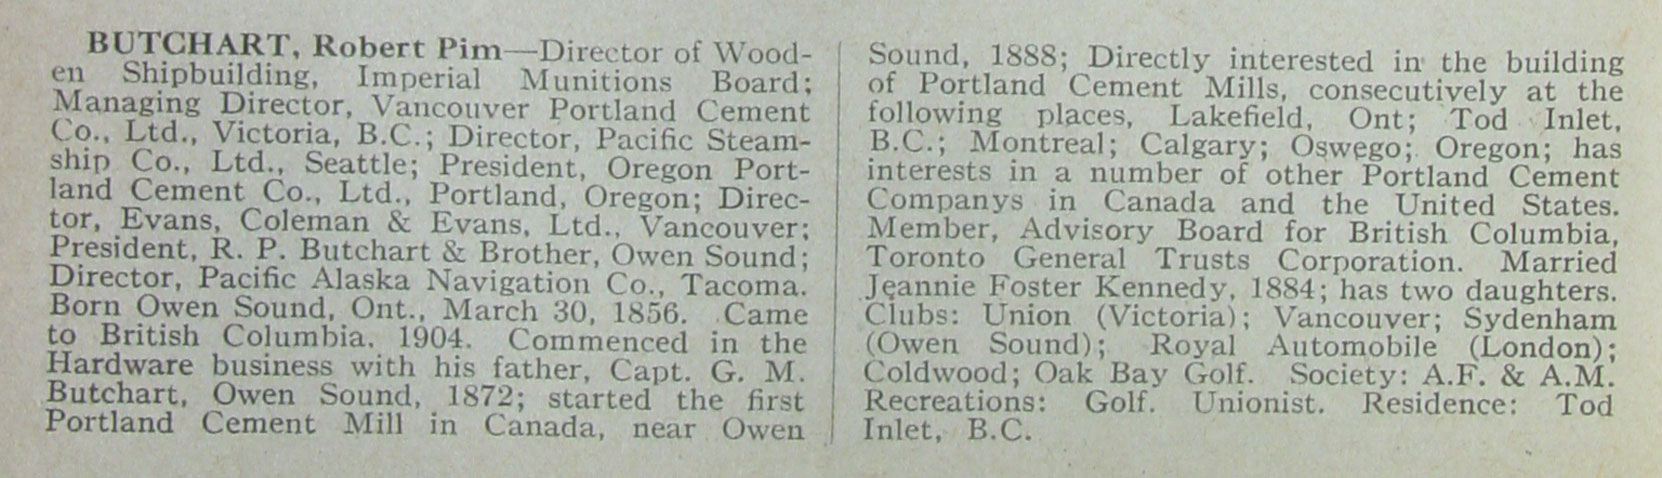 Robert Butchart's entry in the 1917 edition of Who's Who In Canada And Why.